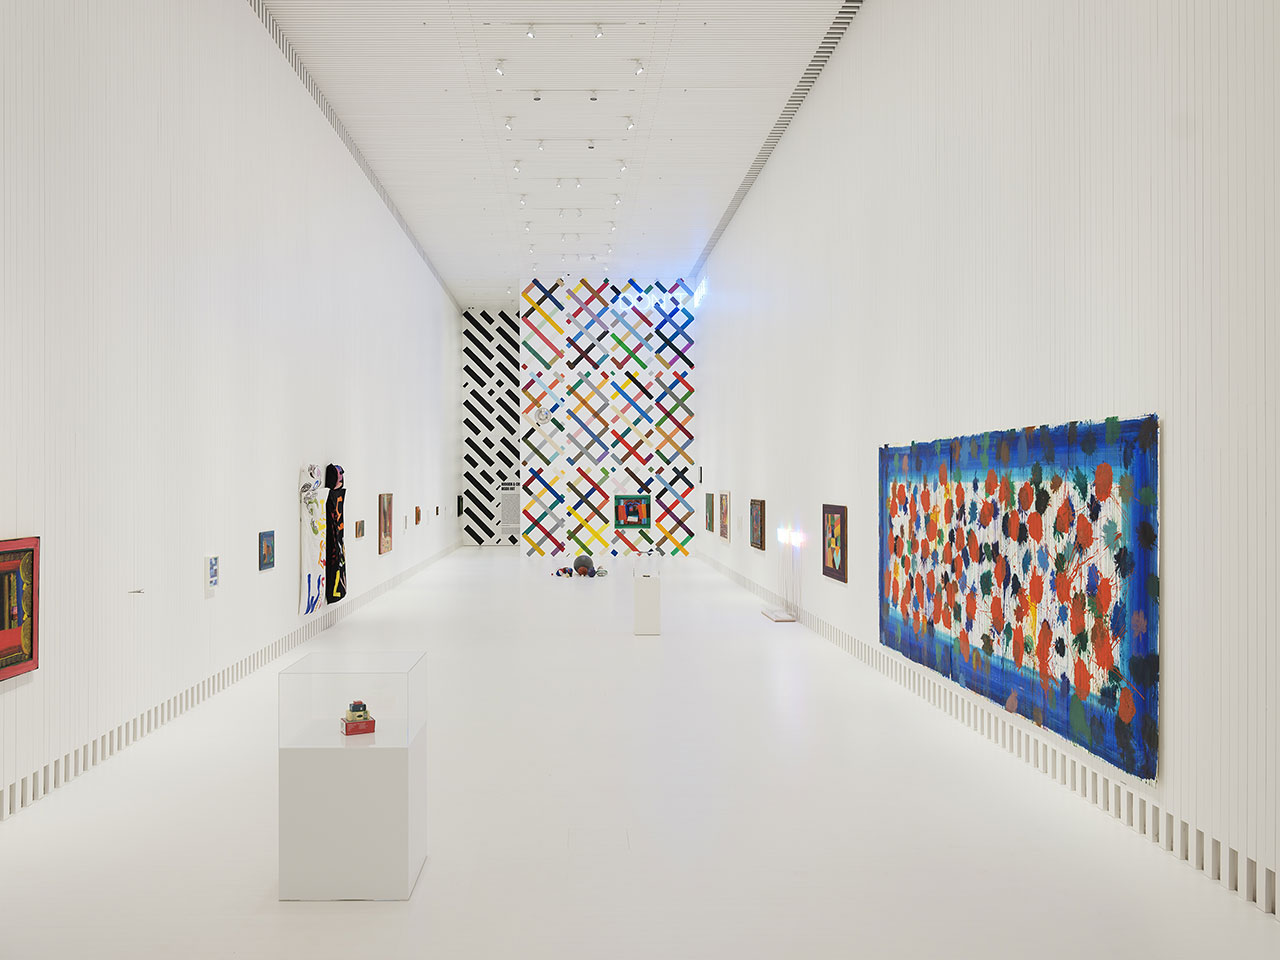 Hodgkin and Creed – Inside Out Exhibition. Photo by Einar Aslaksen.